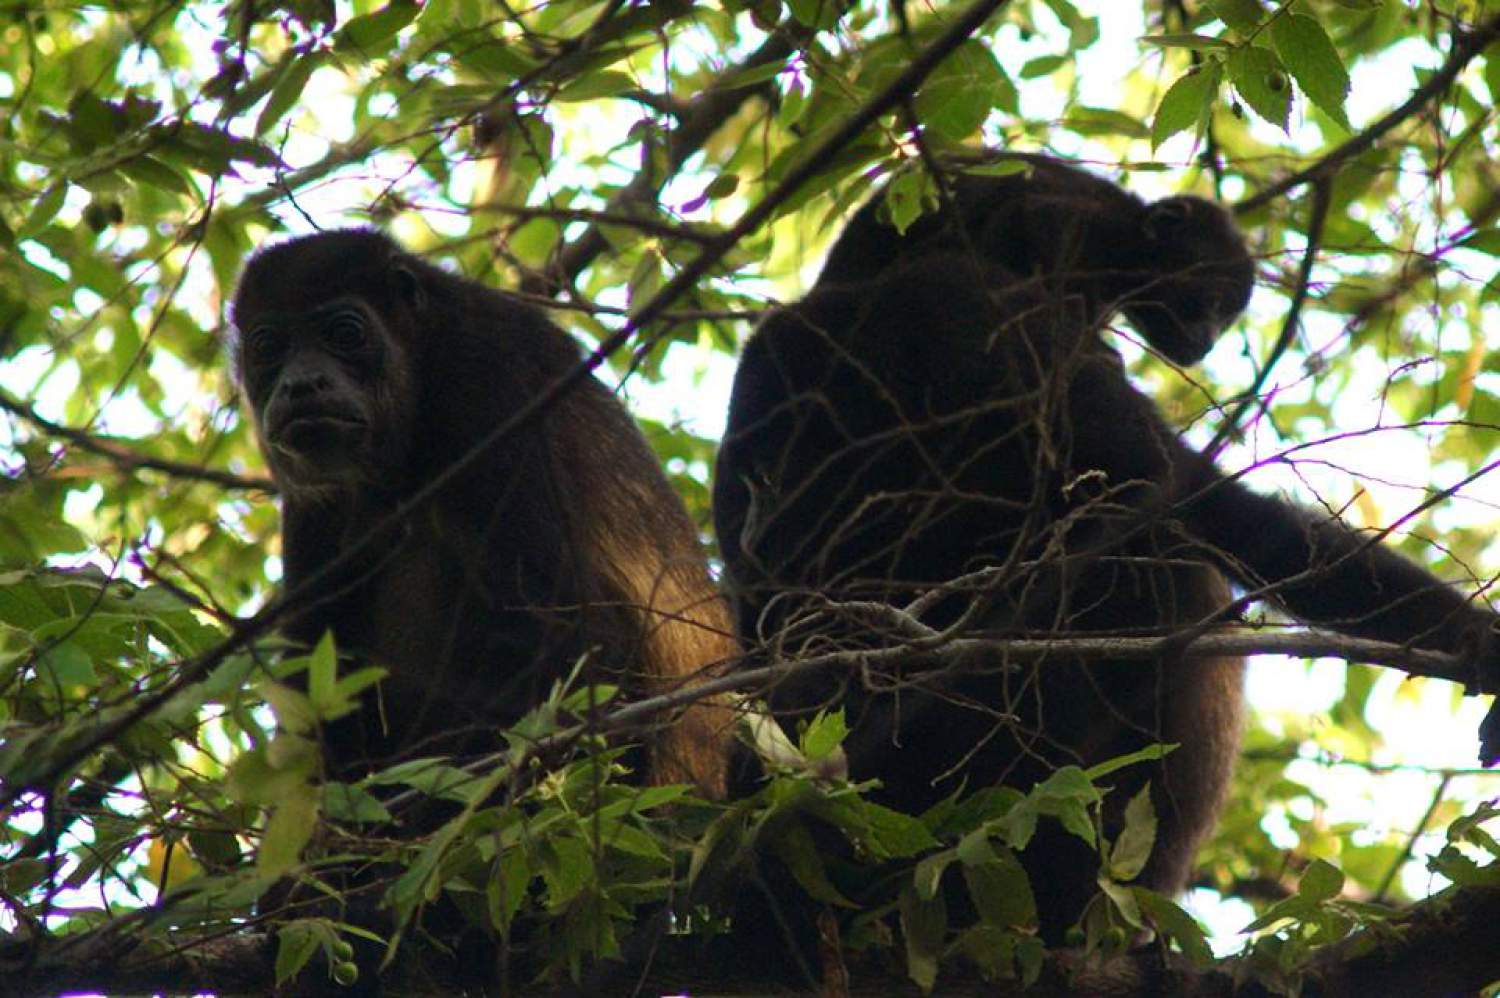 Howling monkeys guardians of Costa Rica